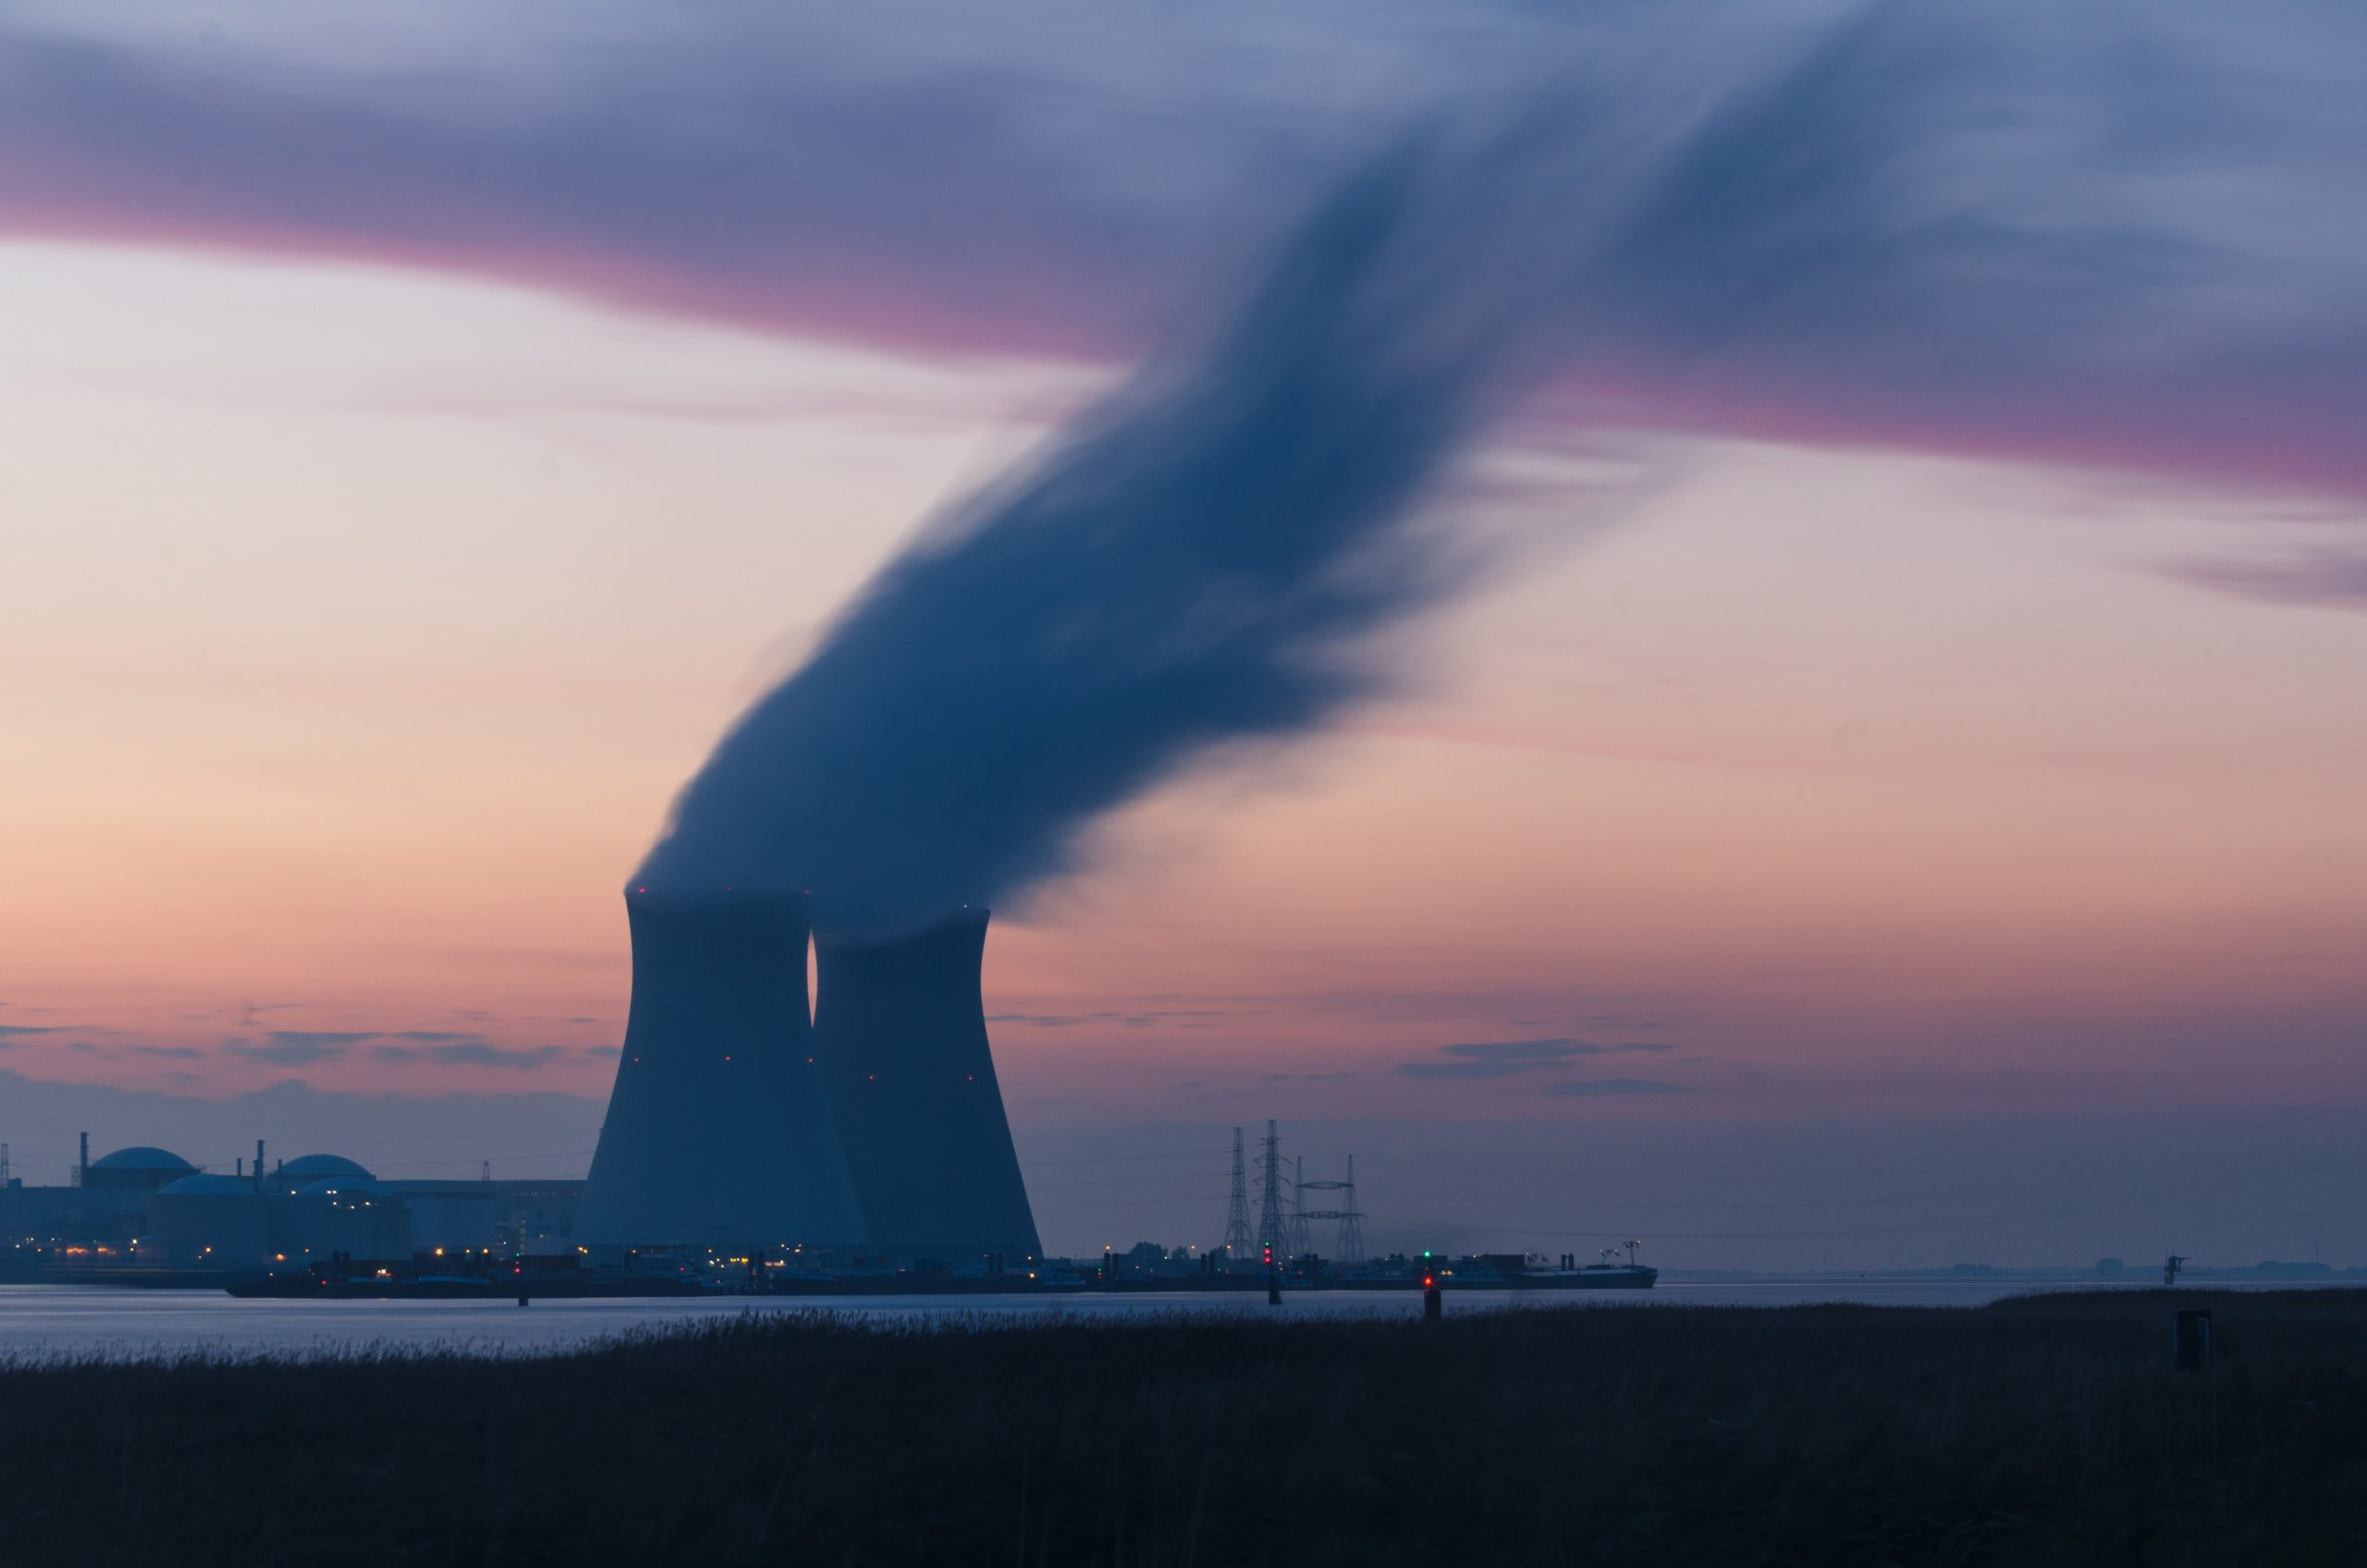 Nuclear plant sunset